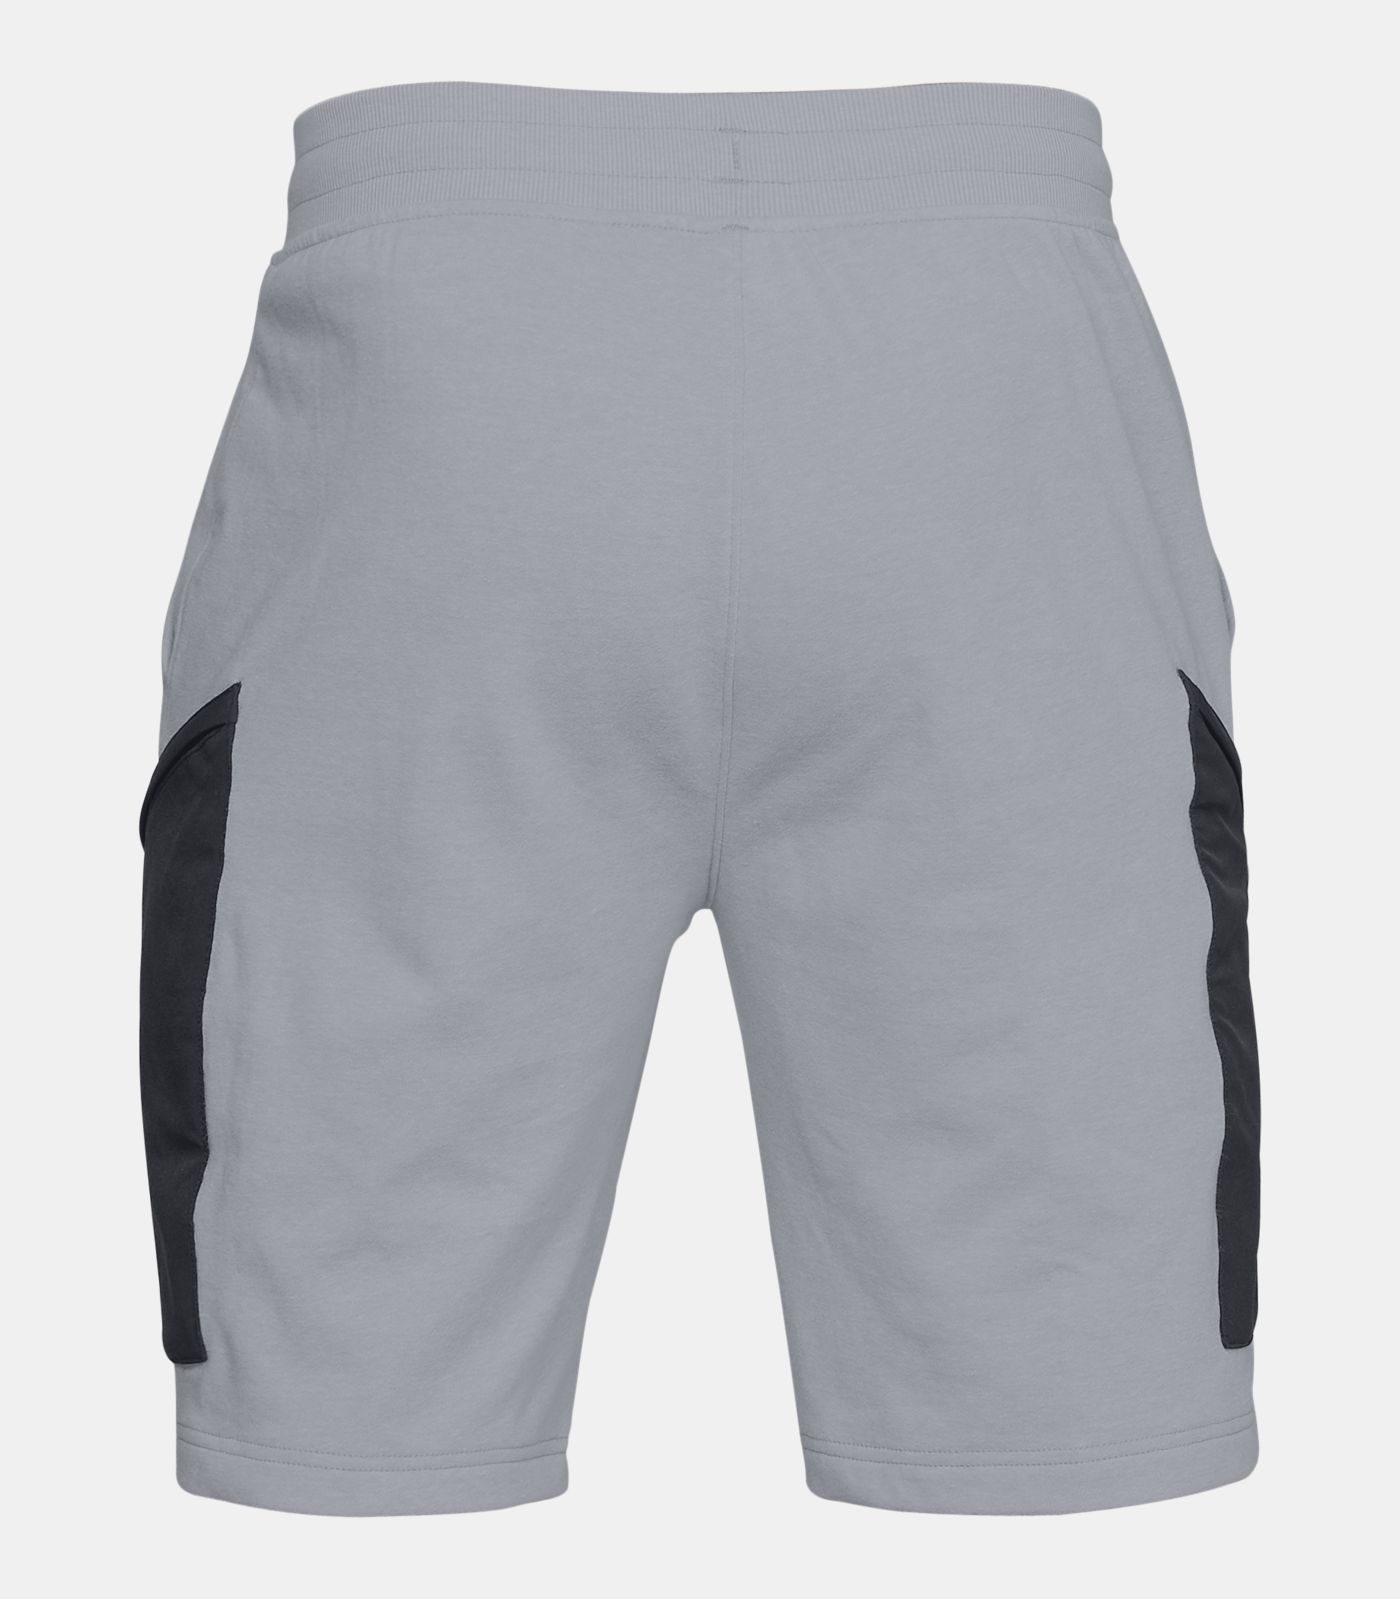 88362c6658 Under Armour Men's UA Microthread Terry Shorts in 2019   Men's Gray ...